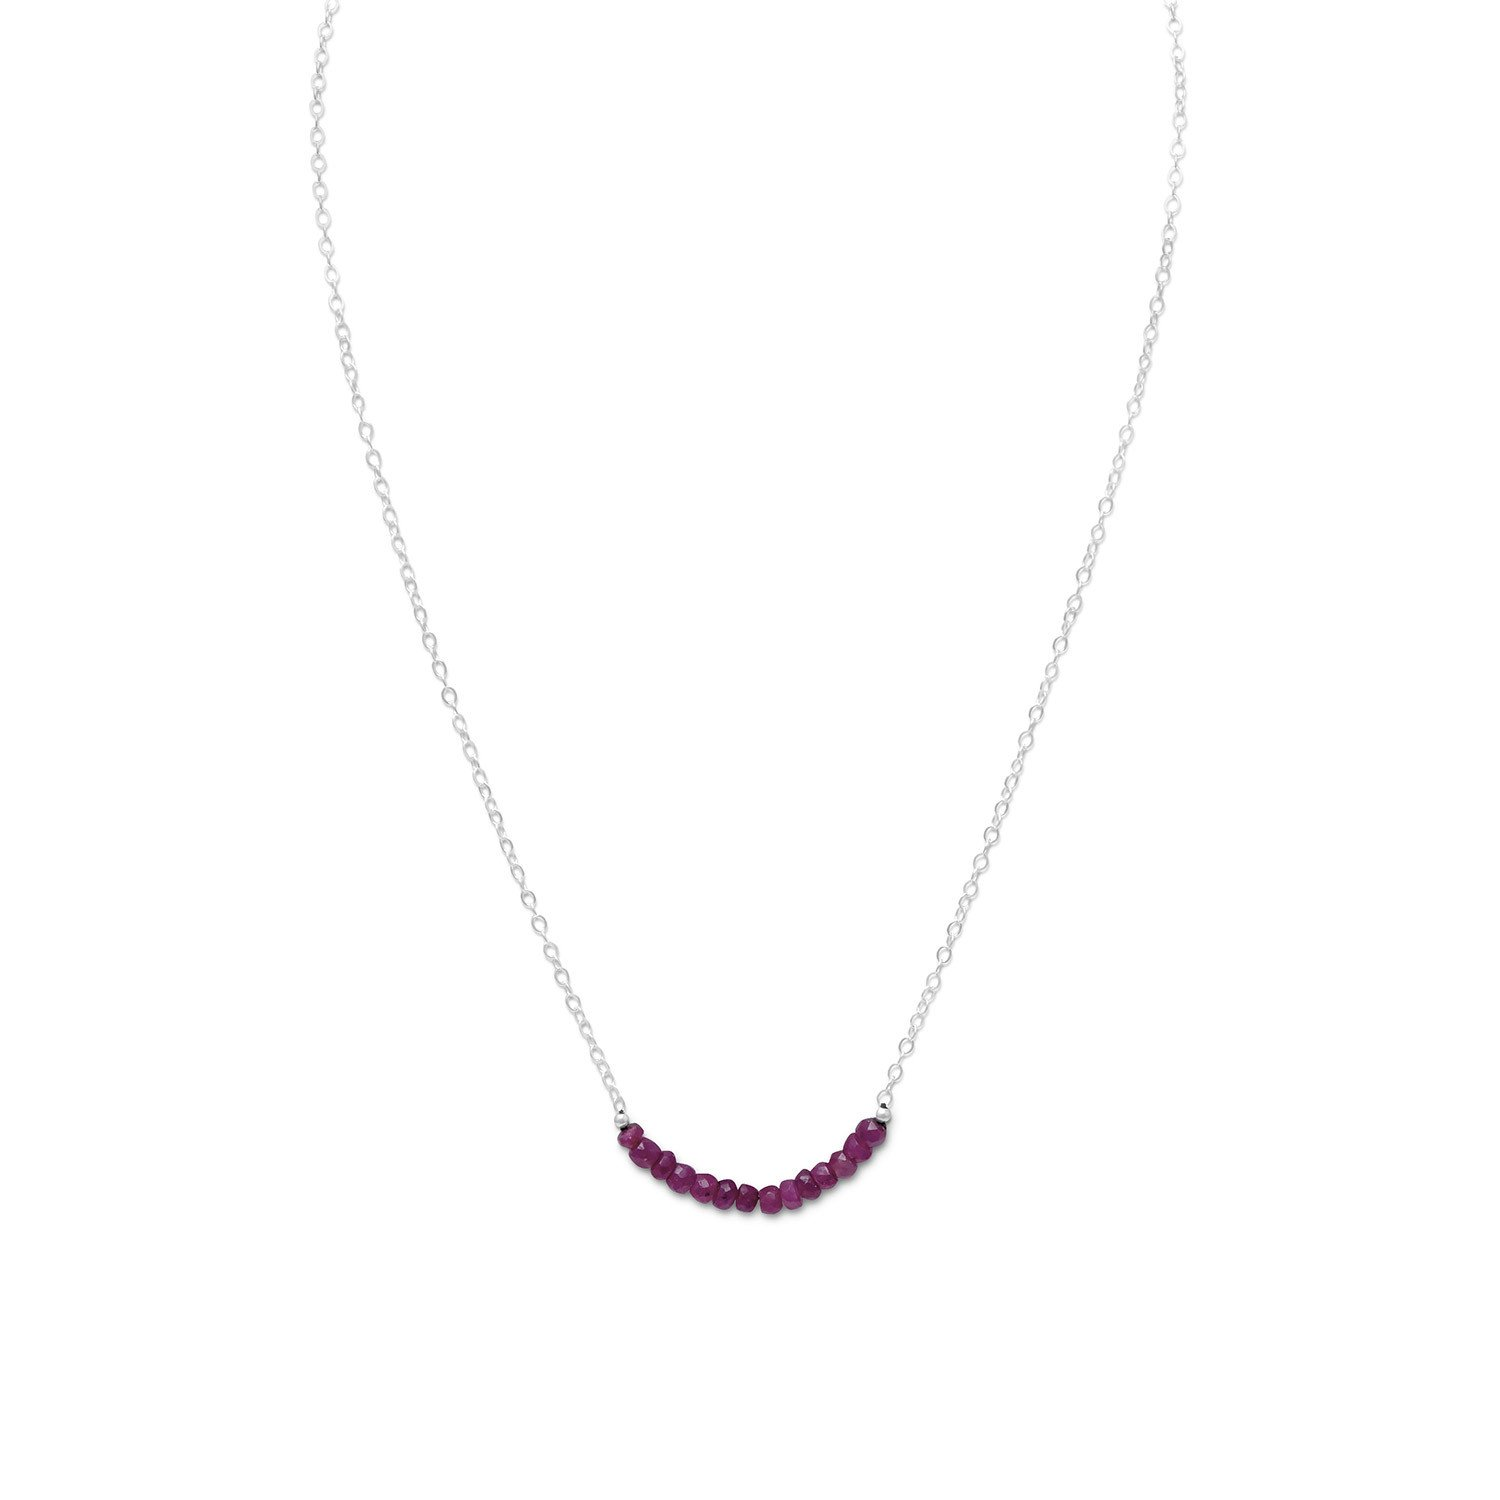 Faceted Corundum Bead Necklace – July Birthstone